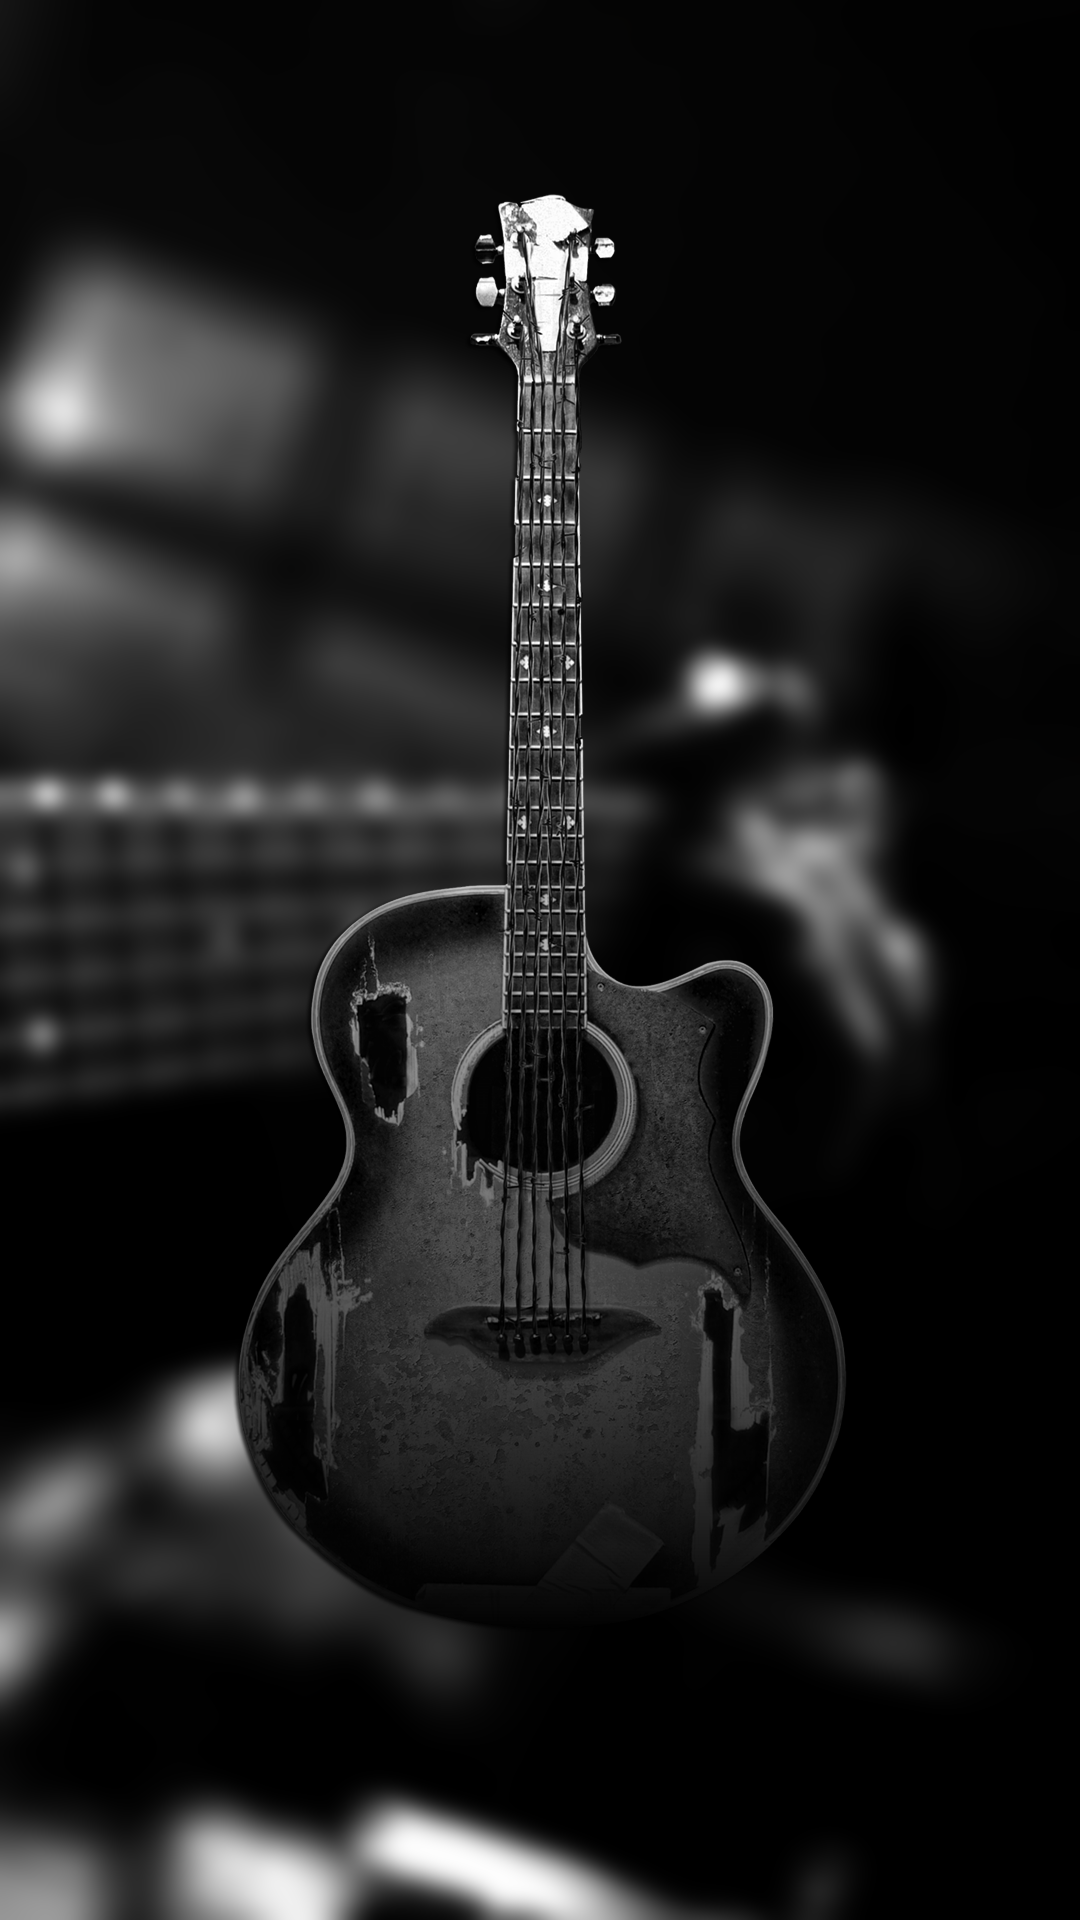 Guitar Wallpaper Iphone Posted By Ethan Tremblay